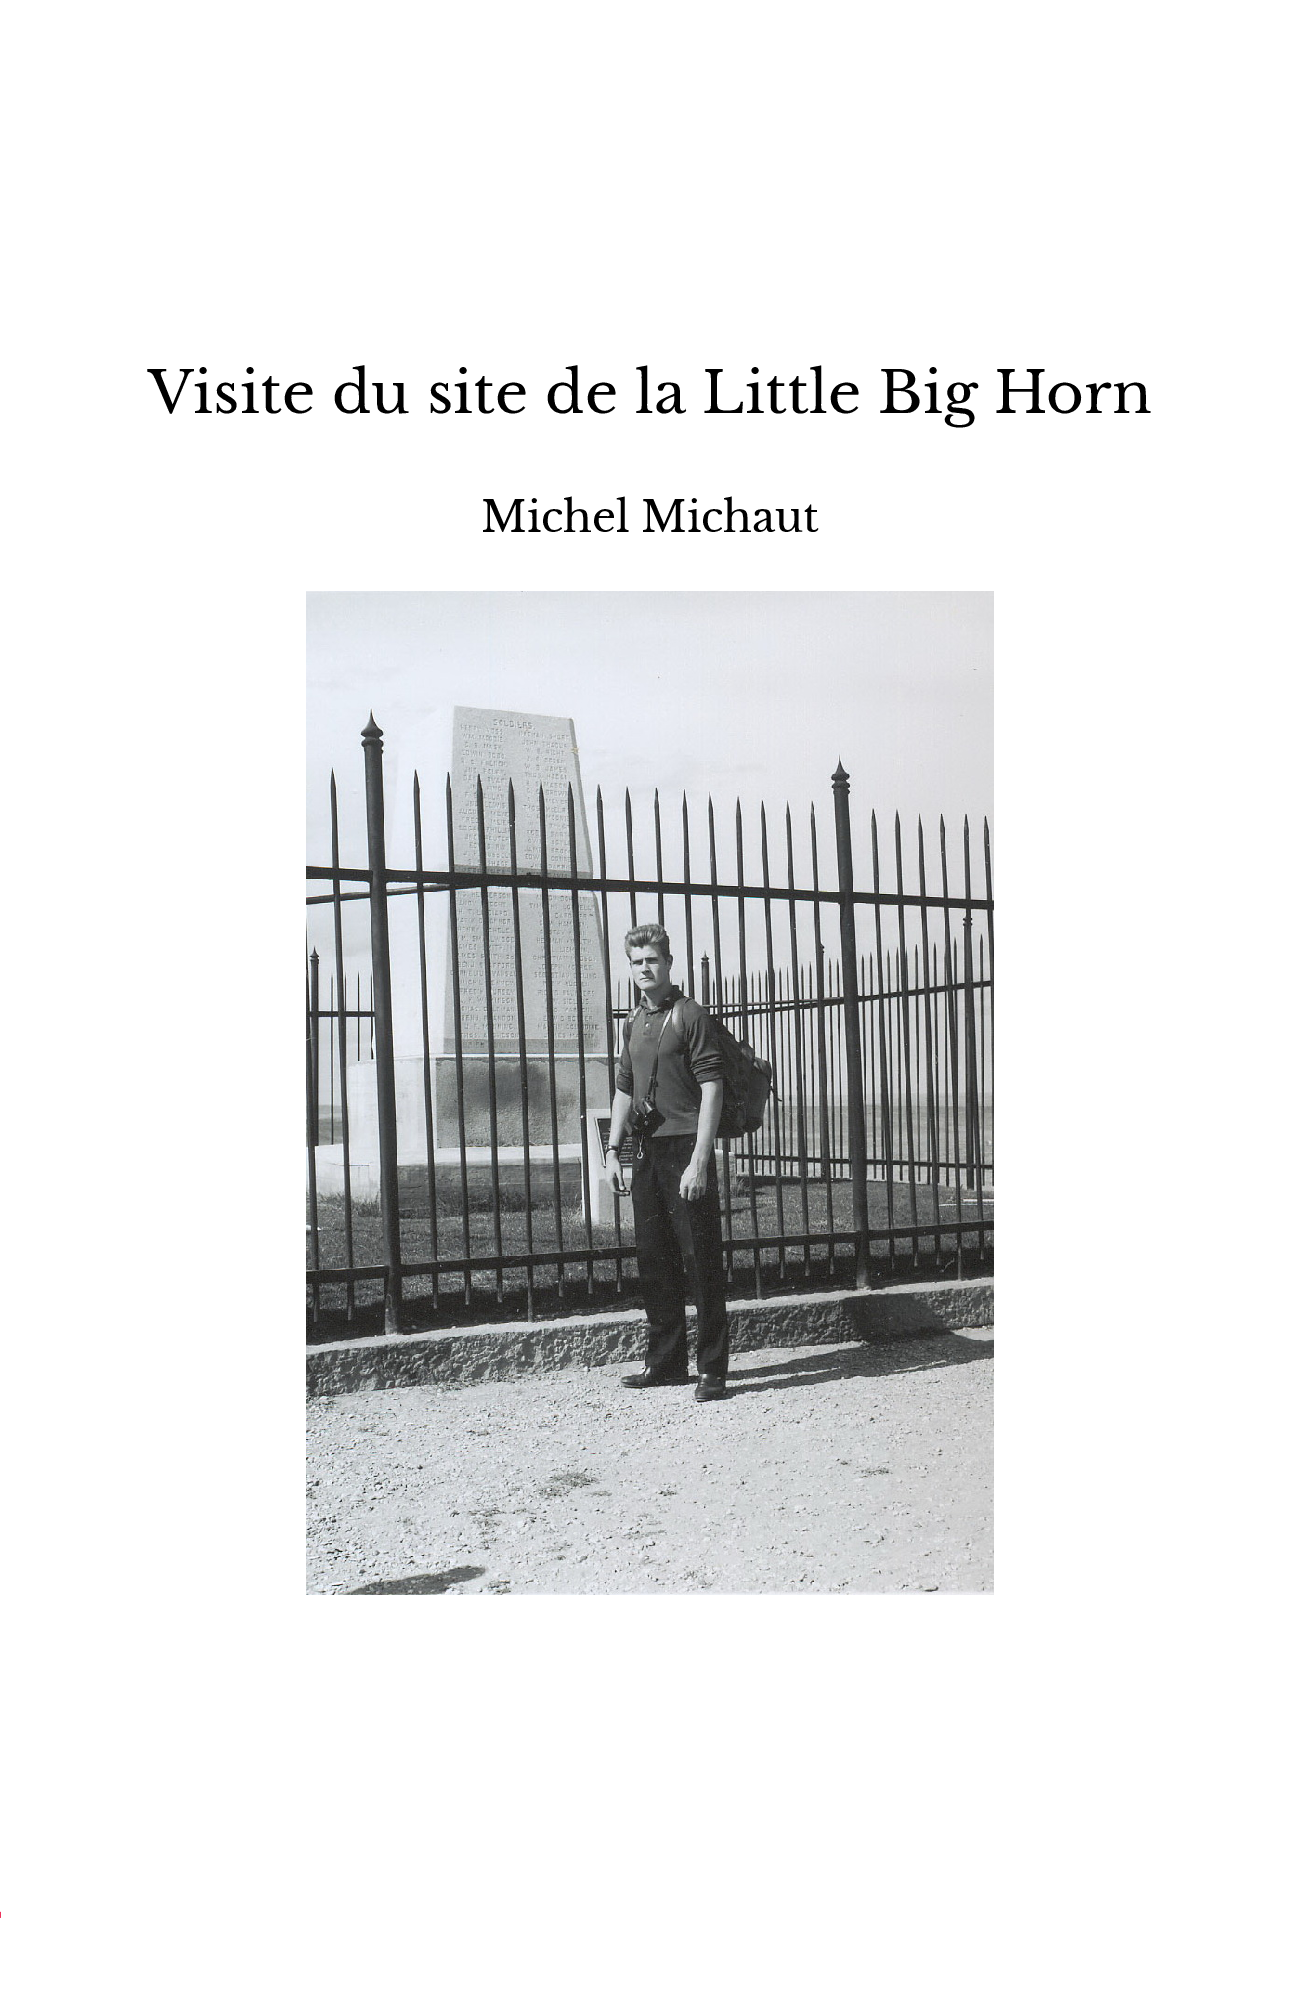 Visite du site de la Little Big Horn